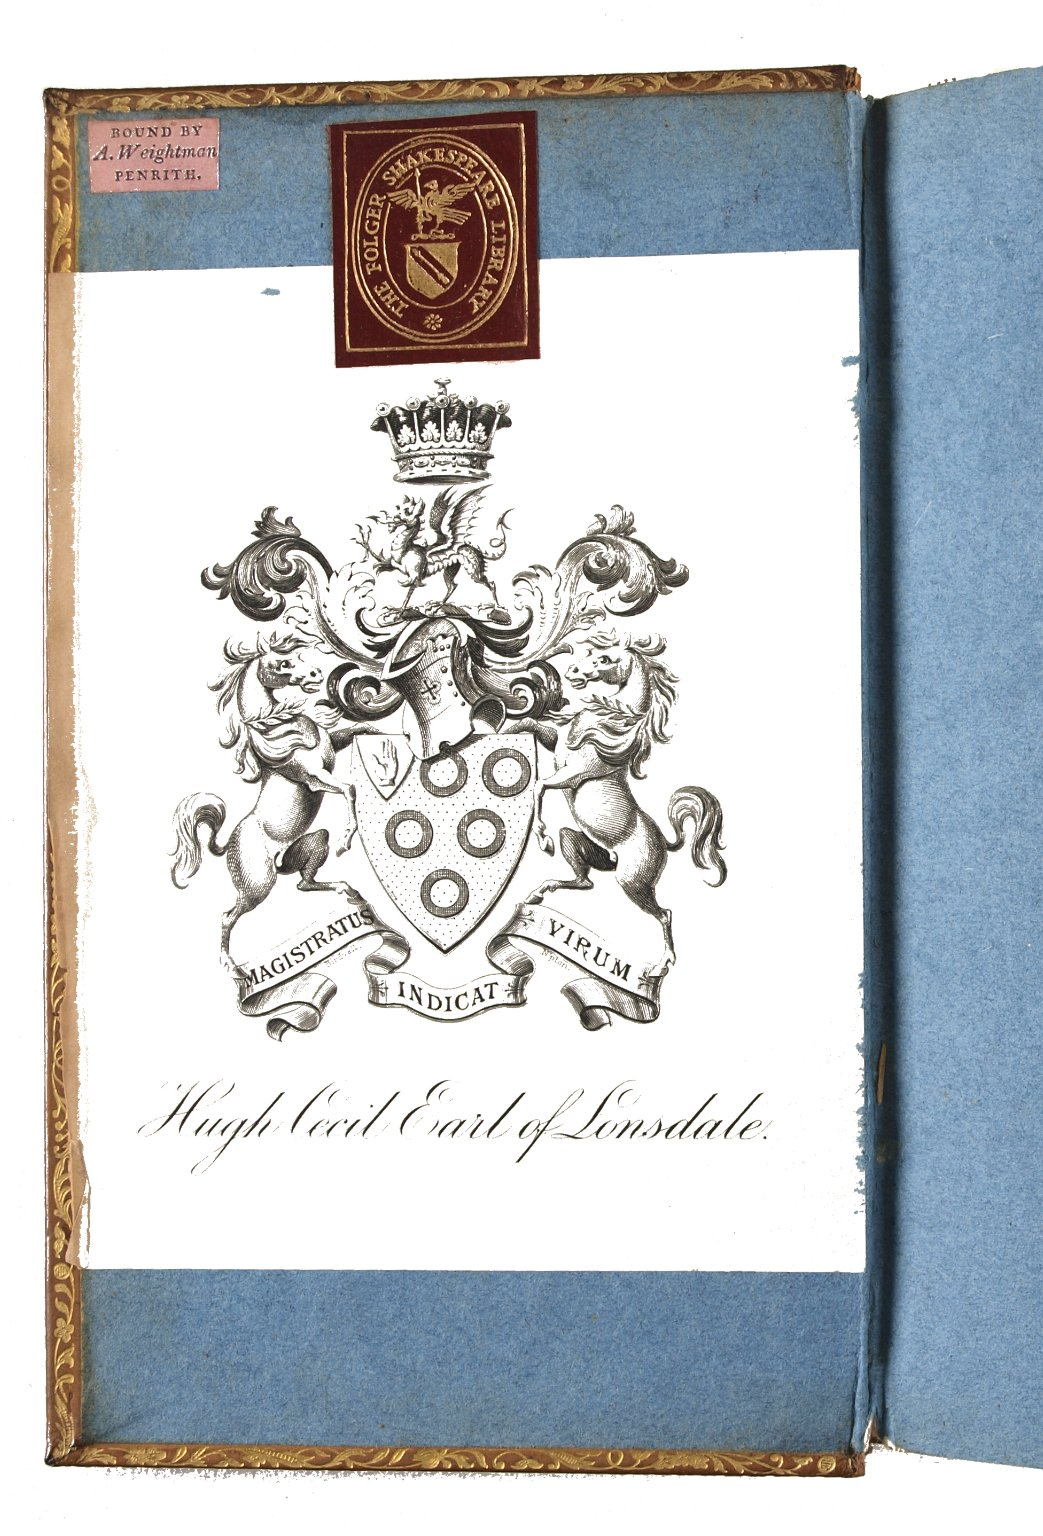 Inside front cover with binder's ticket, STC 7366.2.